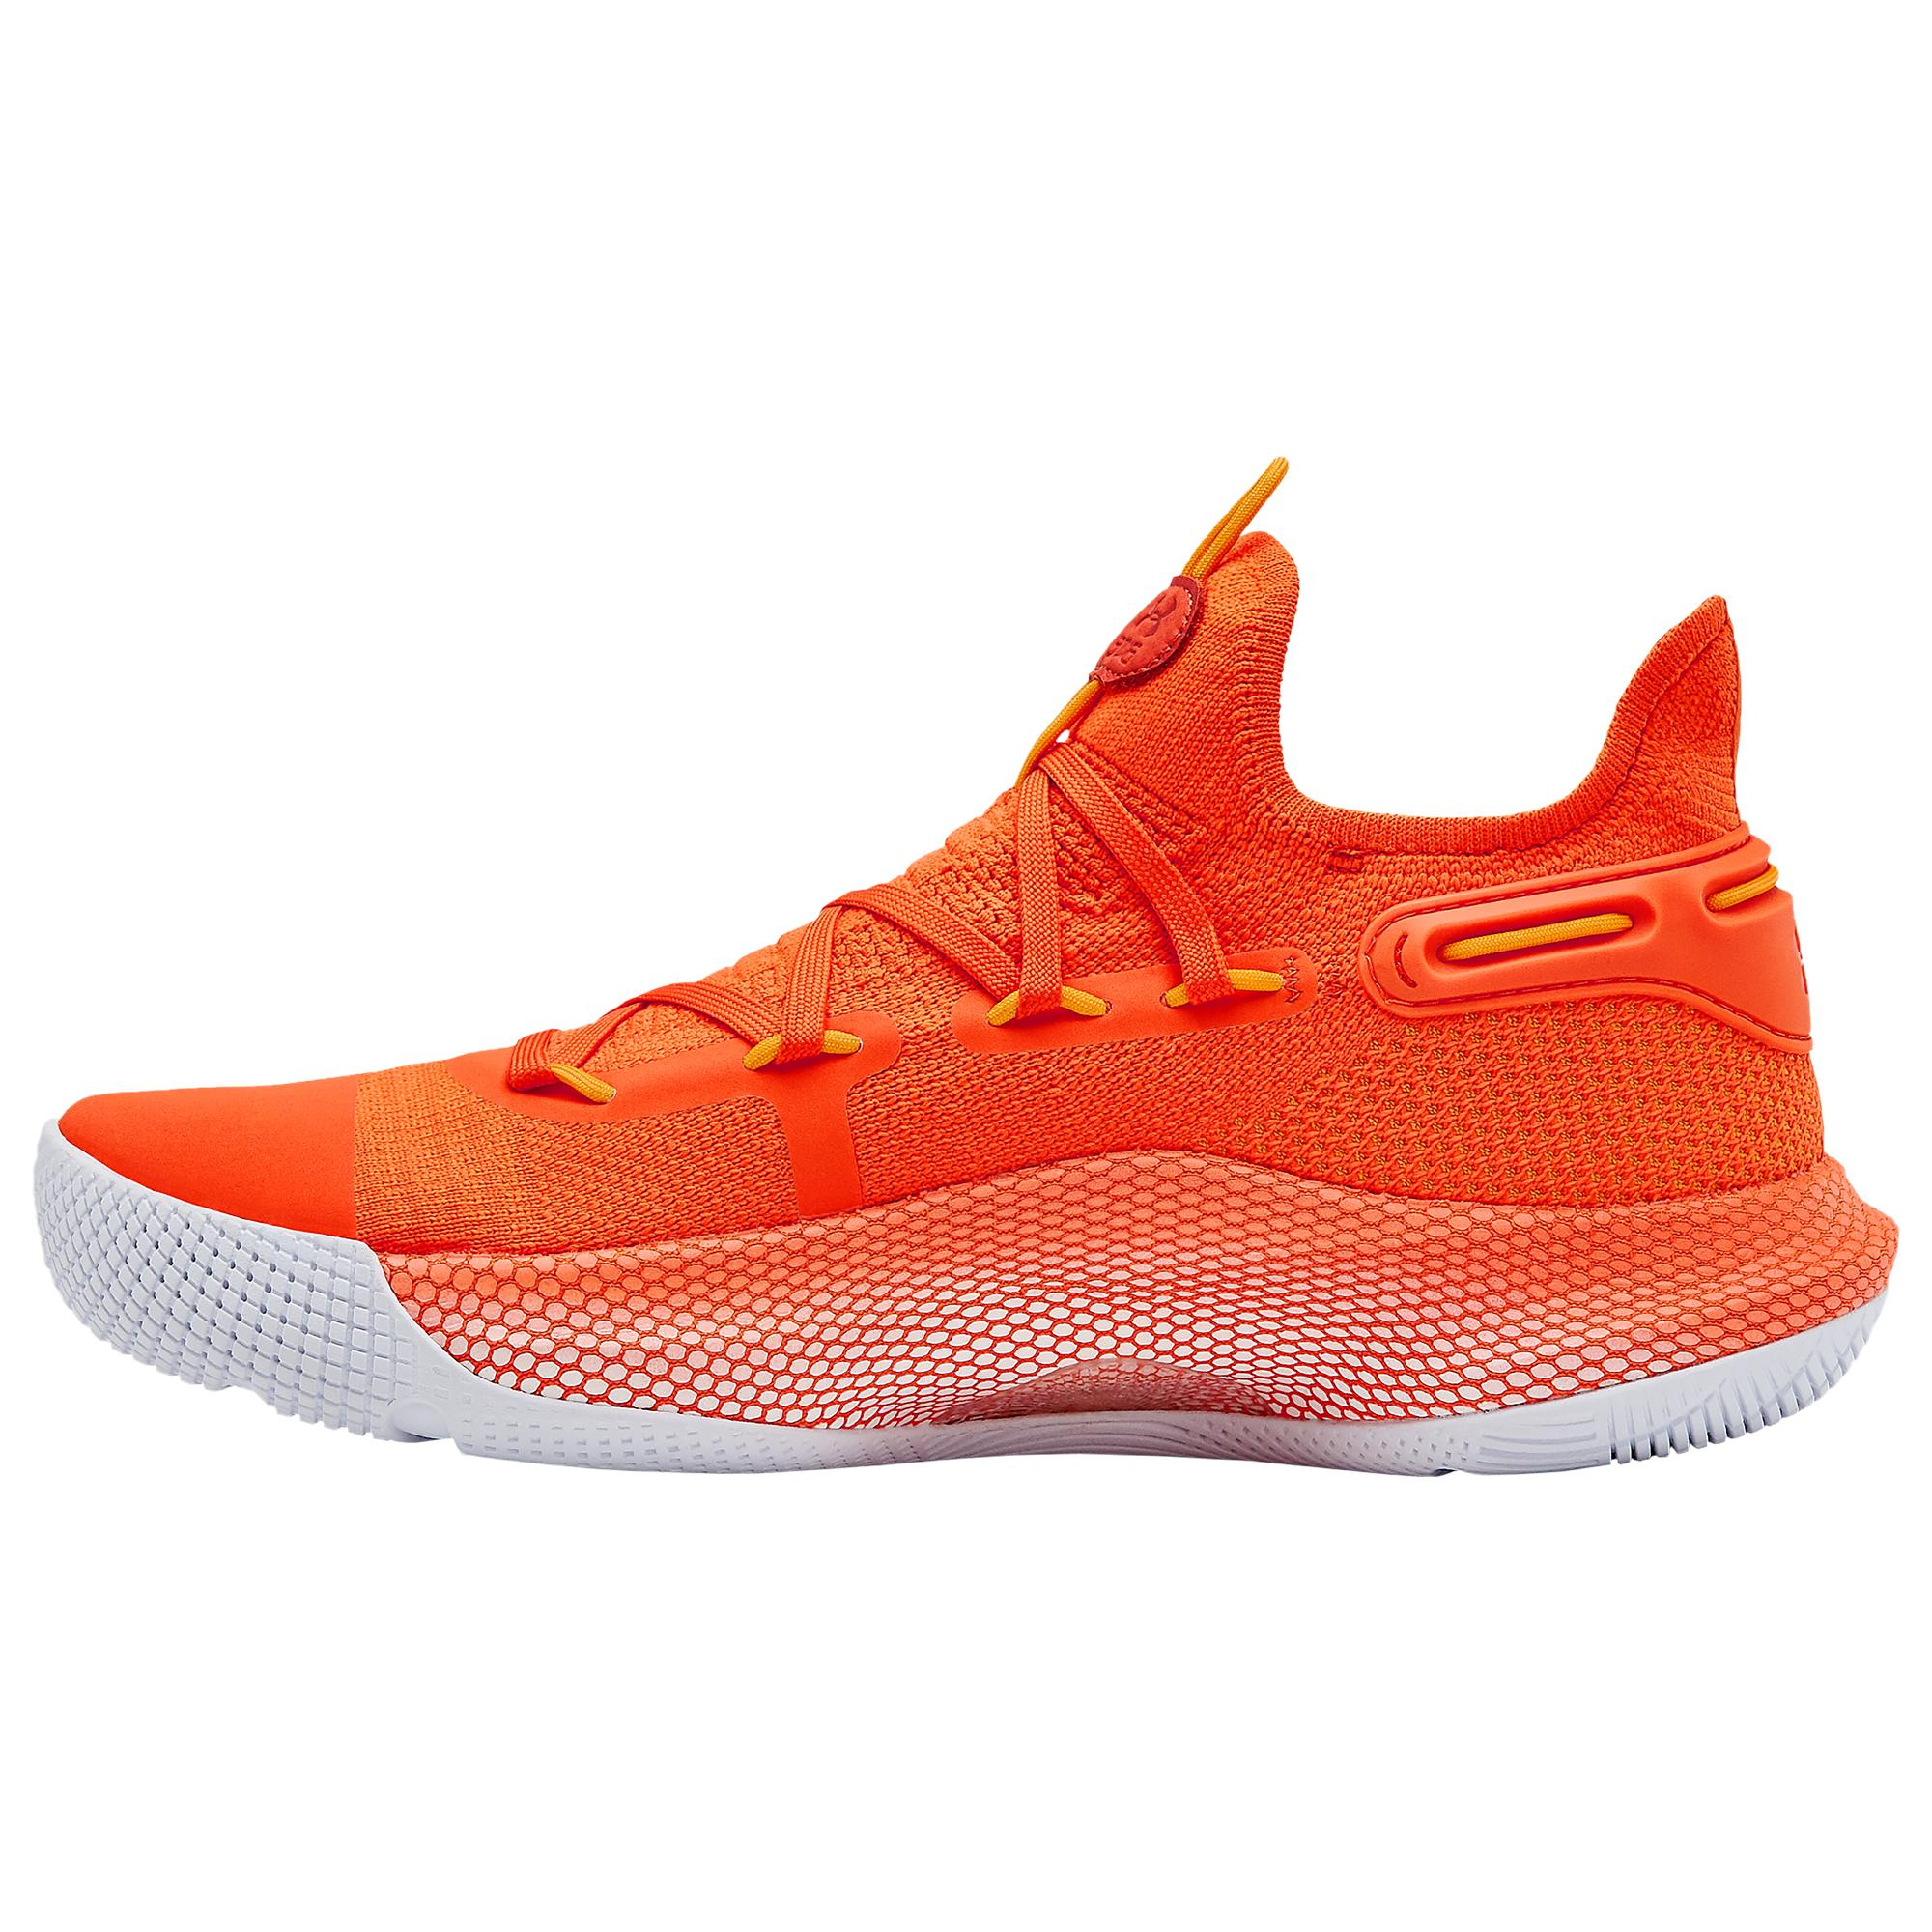 curry 6 shoes Online Shopping for Women